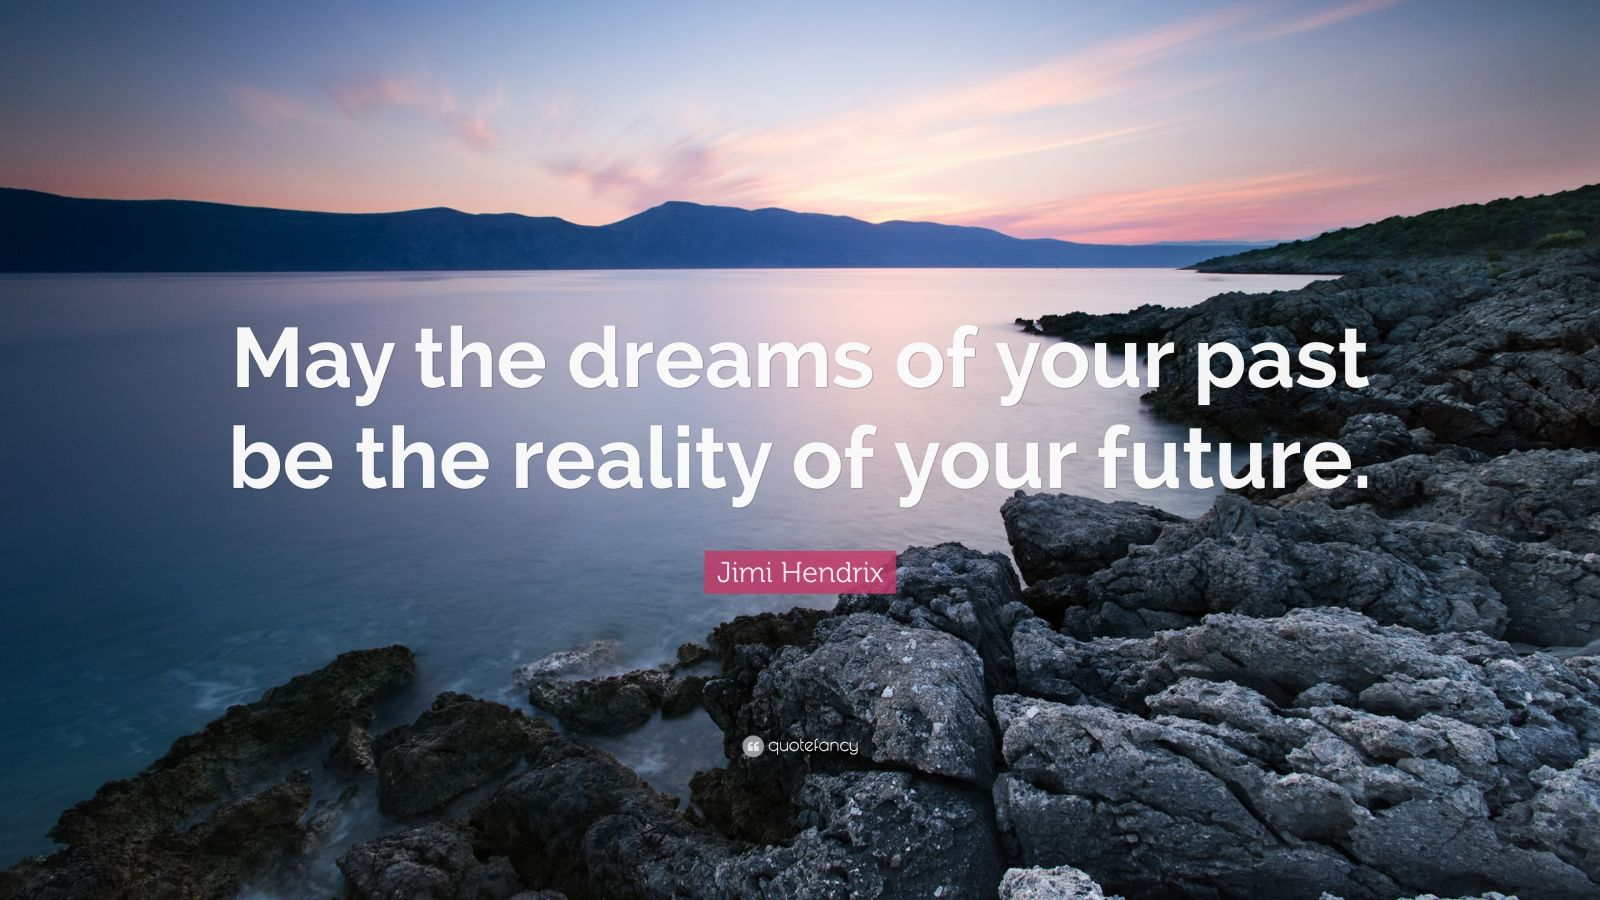 """Jimi Hendrix Quote: """"May the dreams of your past be the reality of your future."""""""